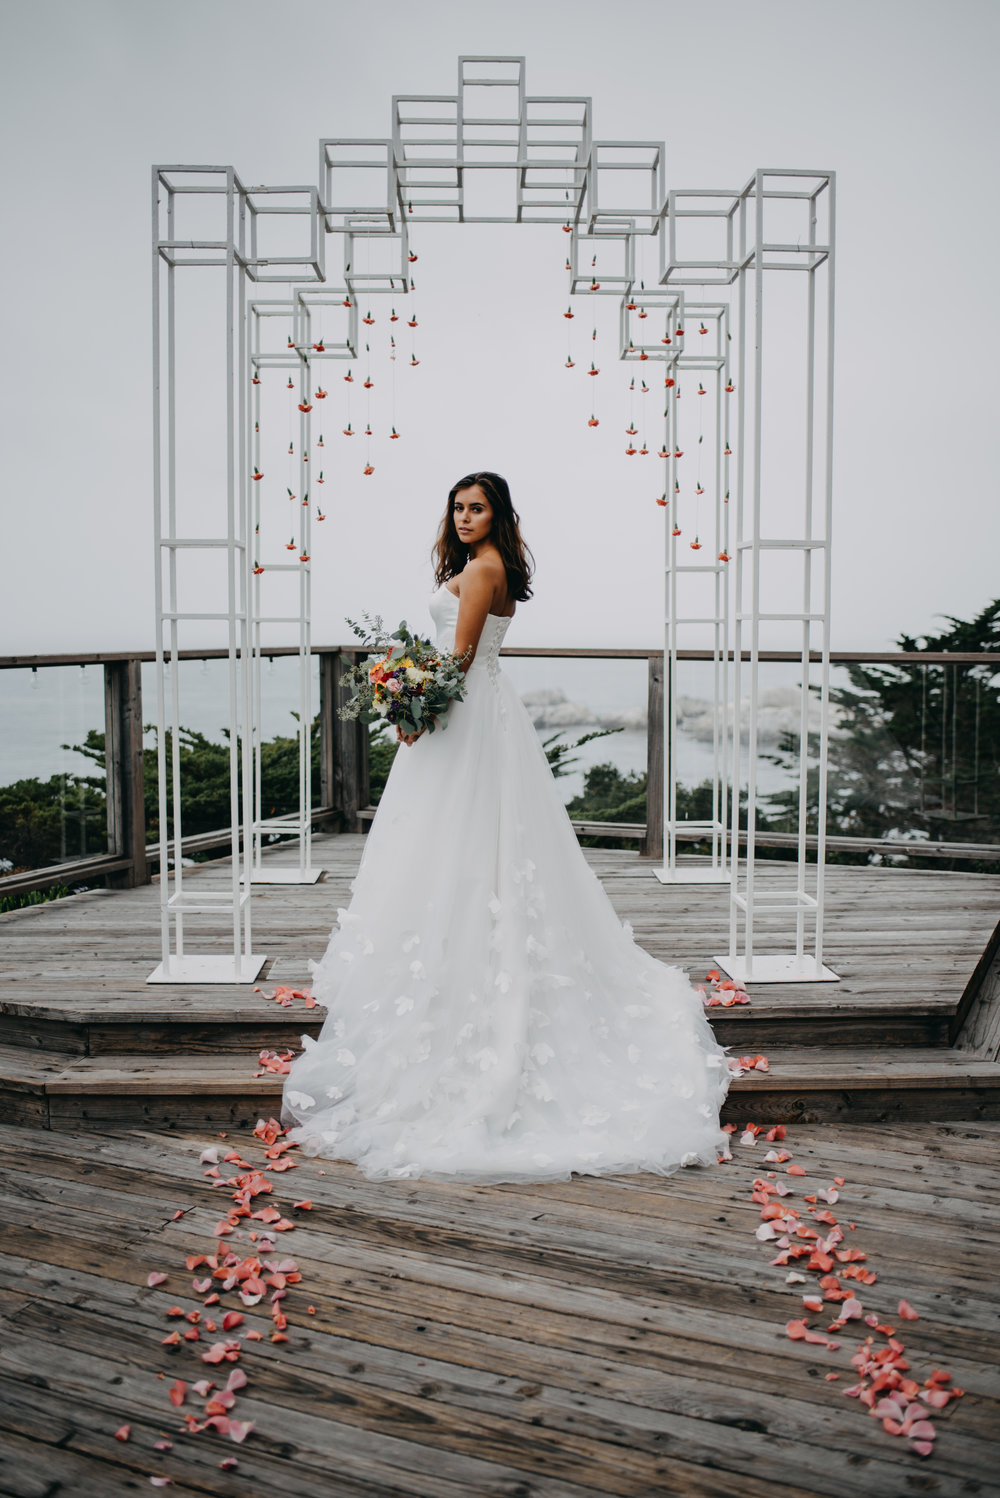 "Dennese's measurements are: Height: 5'3 / Bust 32"" / Waist 26"" / Hip 32"" 